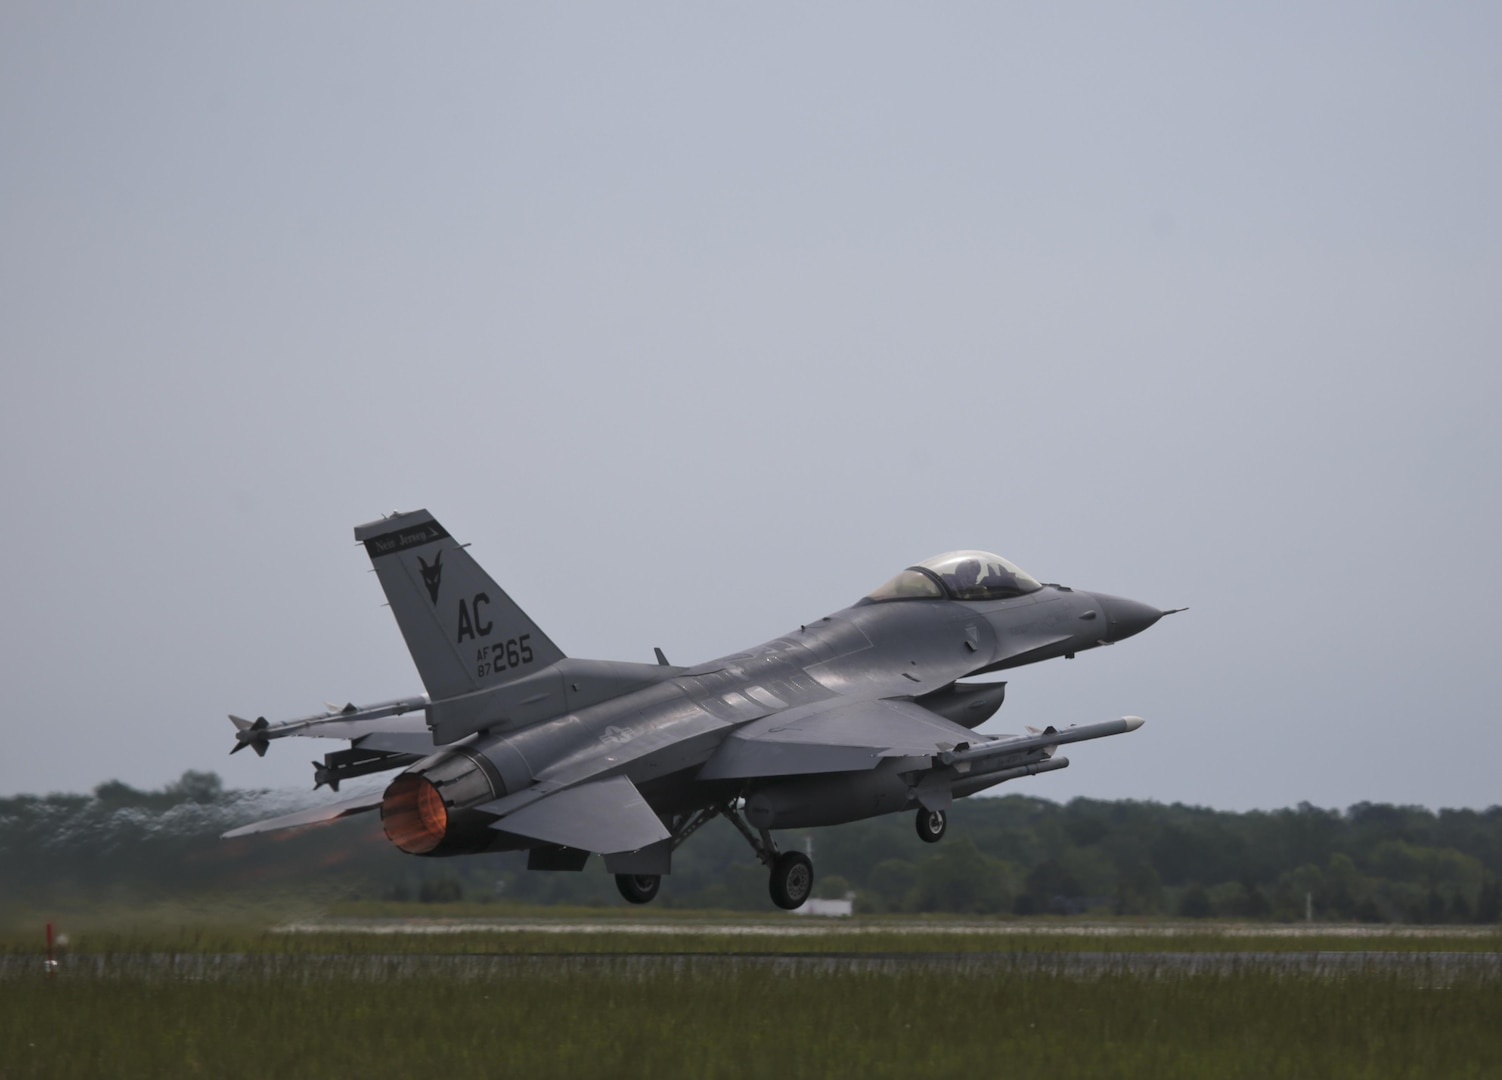 A New Jersey Air National Guard F-16C Fighting Falcon from the 177th Fighter Wing takes off for a flight during a three-day Aeropsace Control Alert CrossTell live-fly training exercise at Atlantic City Air National Guard Base, N.J., May 23, 2017. Representatives from the Air National Guard fighter wings, Civil Air Patrol, and U.S. Coast Guard rotary-wing air intercept units will conduct daily sorties from May 23-25 to hone their skills with tactical-level air-intercept procedures. (U.S. Air National Guard photo by Master Sgt. Matt Hecht/Released)